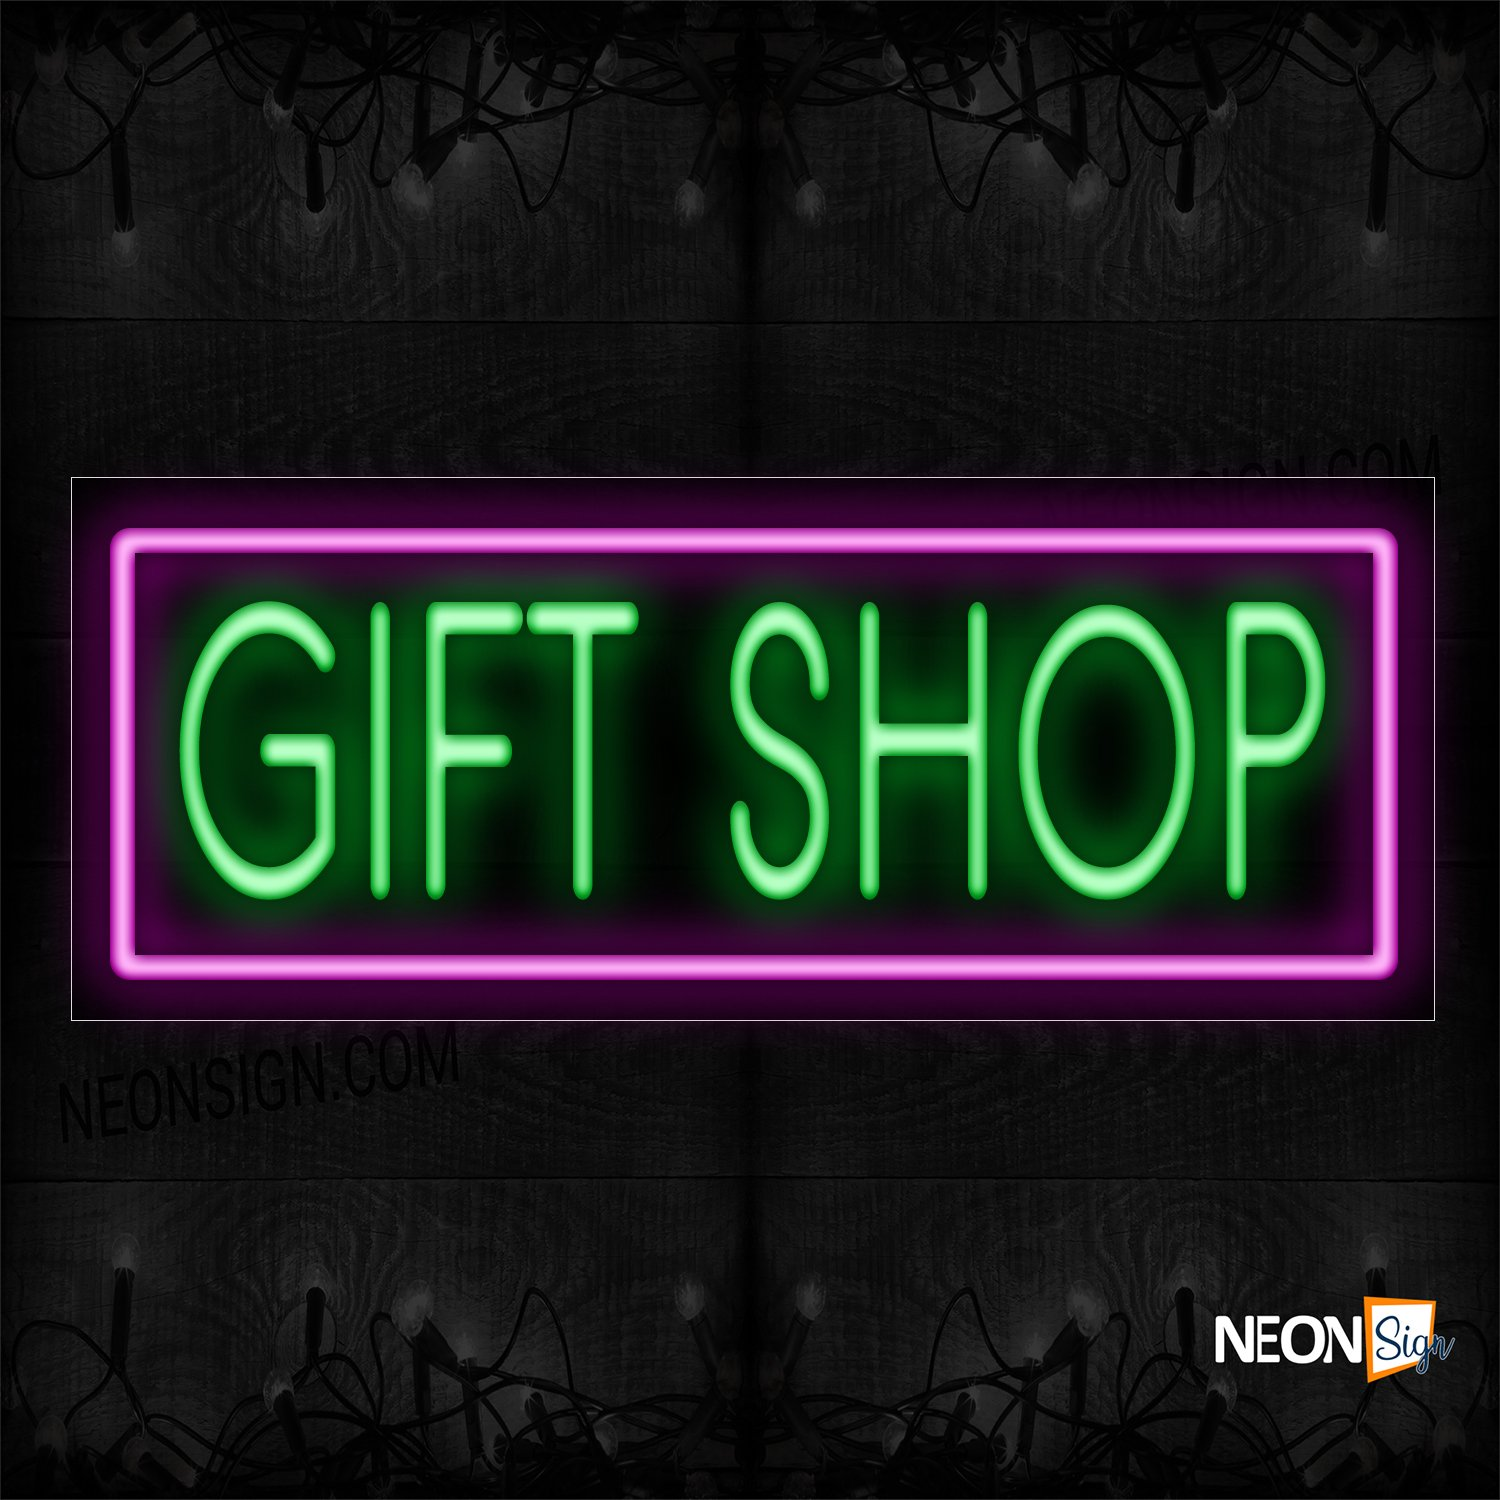 Image of 11412 Gift Shop With Purple Border Neon Sign_13x32 Black Backing